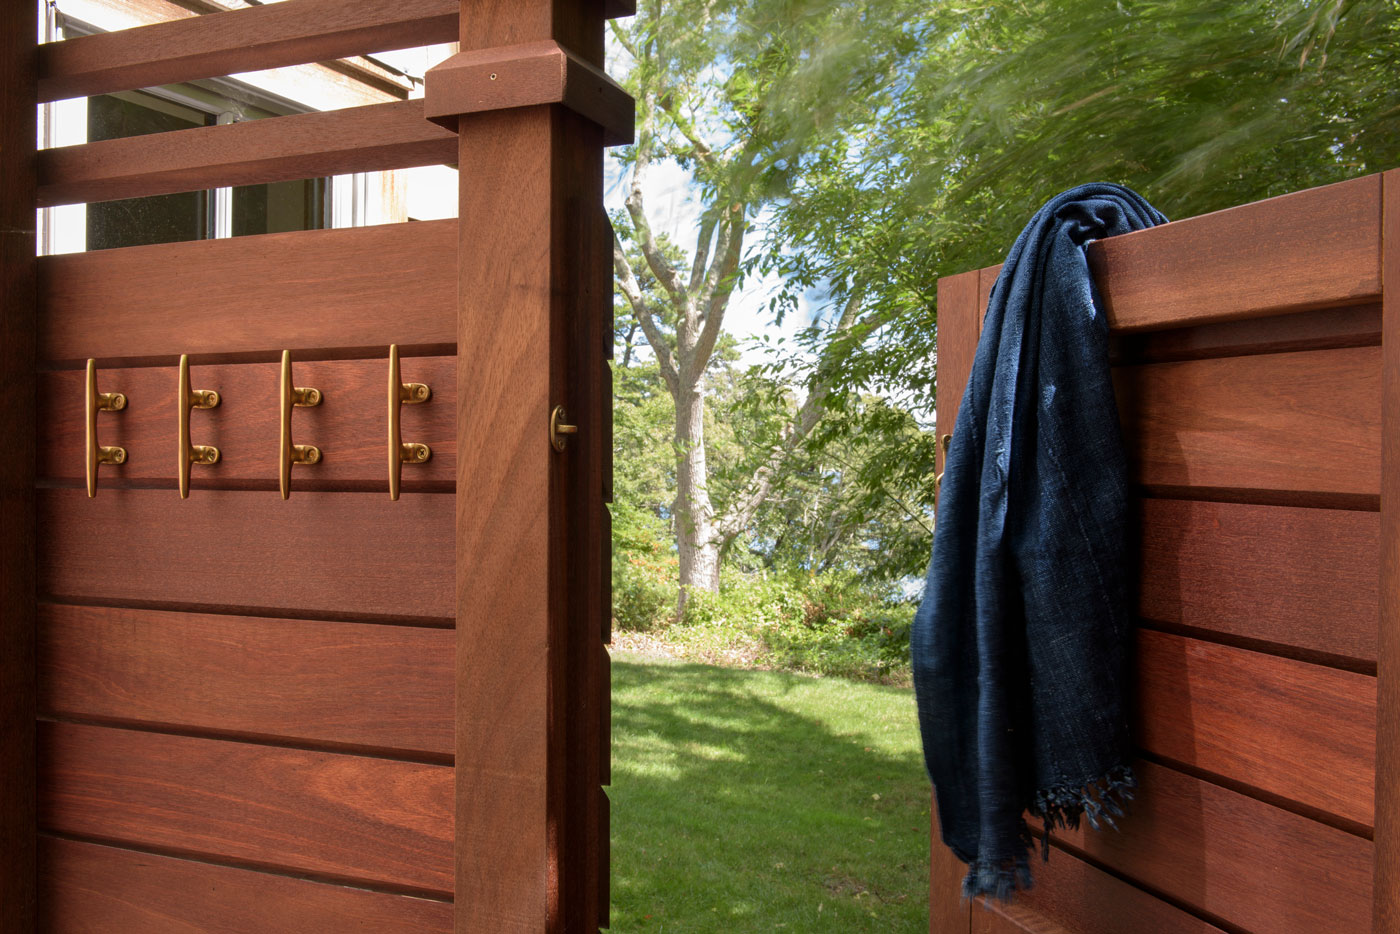 Mahogany outdoor shower designed by Worth and Wing of Martha's Vineyard